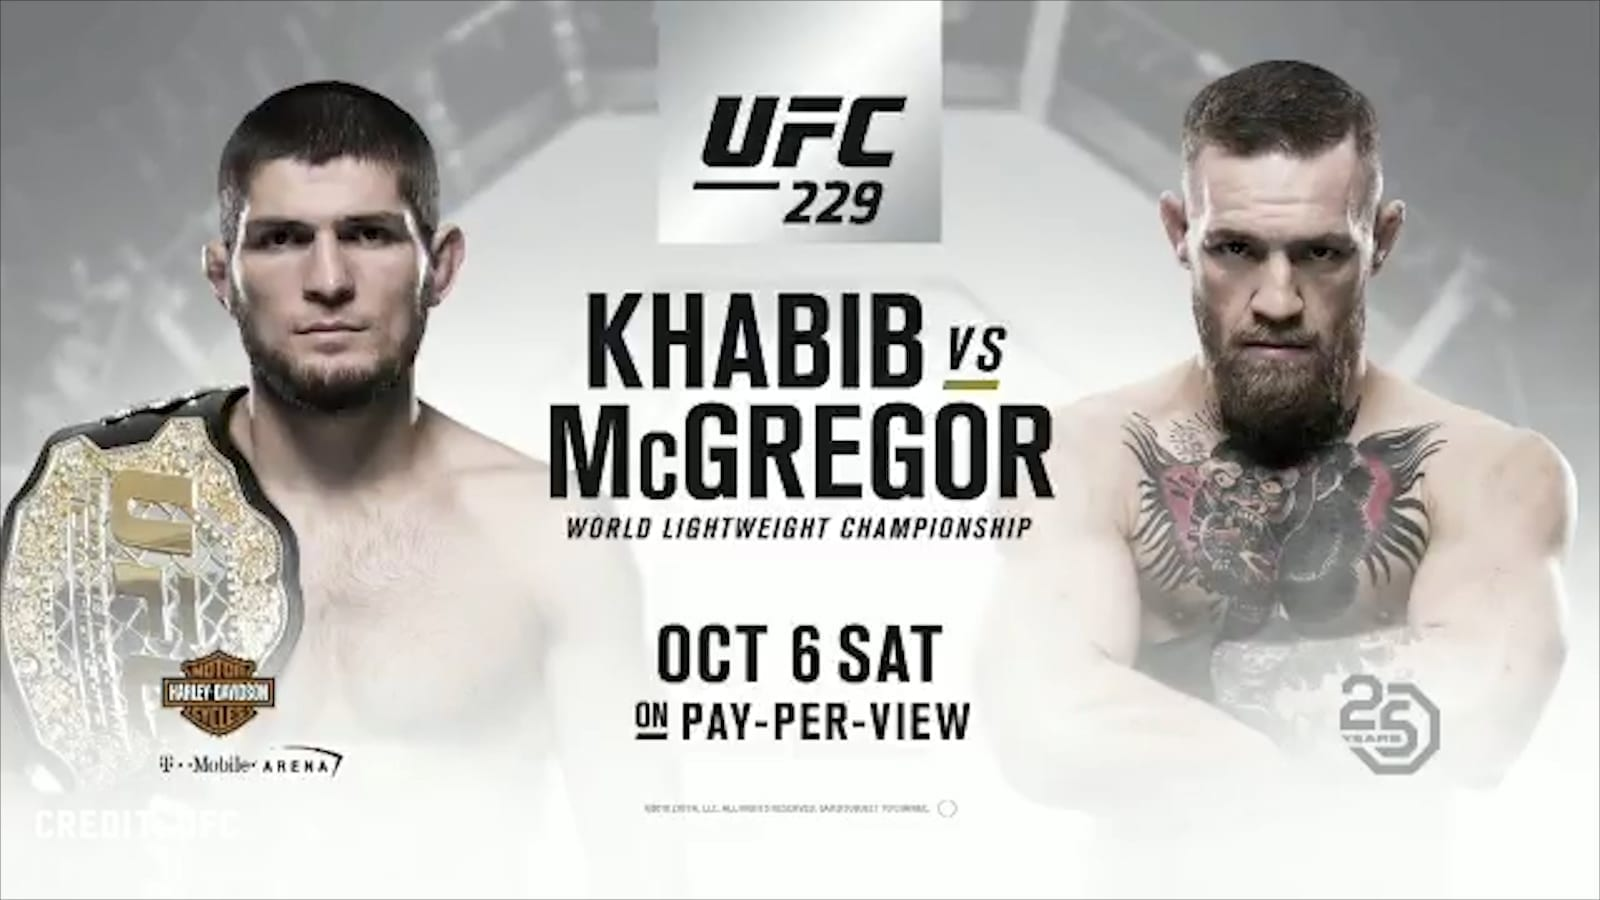 https://themaclife.com/wp-content/uploads/2018/08/ITS-OFFICIAL-@TheNotoriousMMA-vs-@TeamKhabib-goes-down-at-UFC229-on-October-6th-_1.00_01_06_10.Still001.jpg